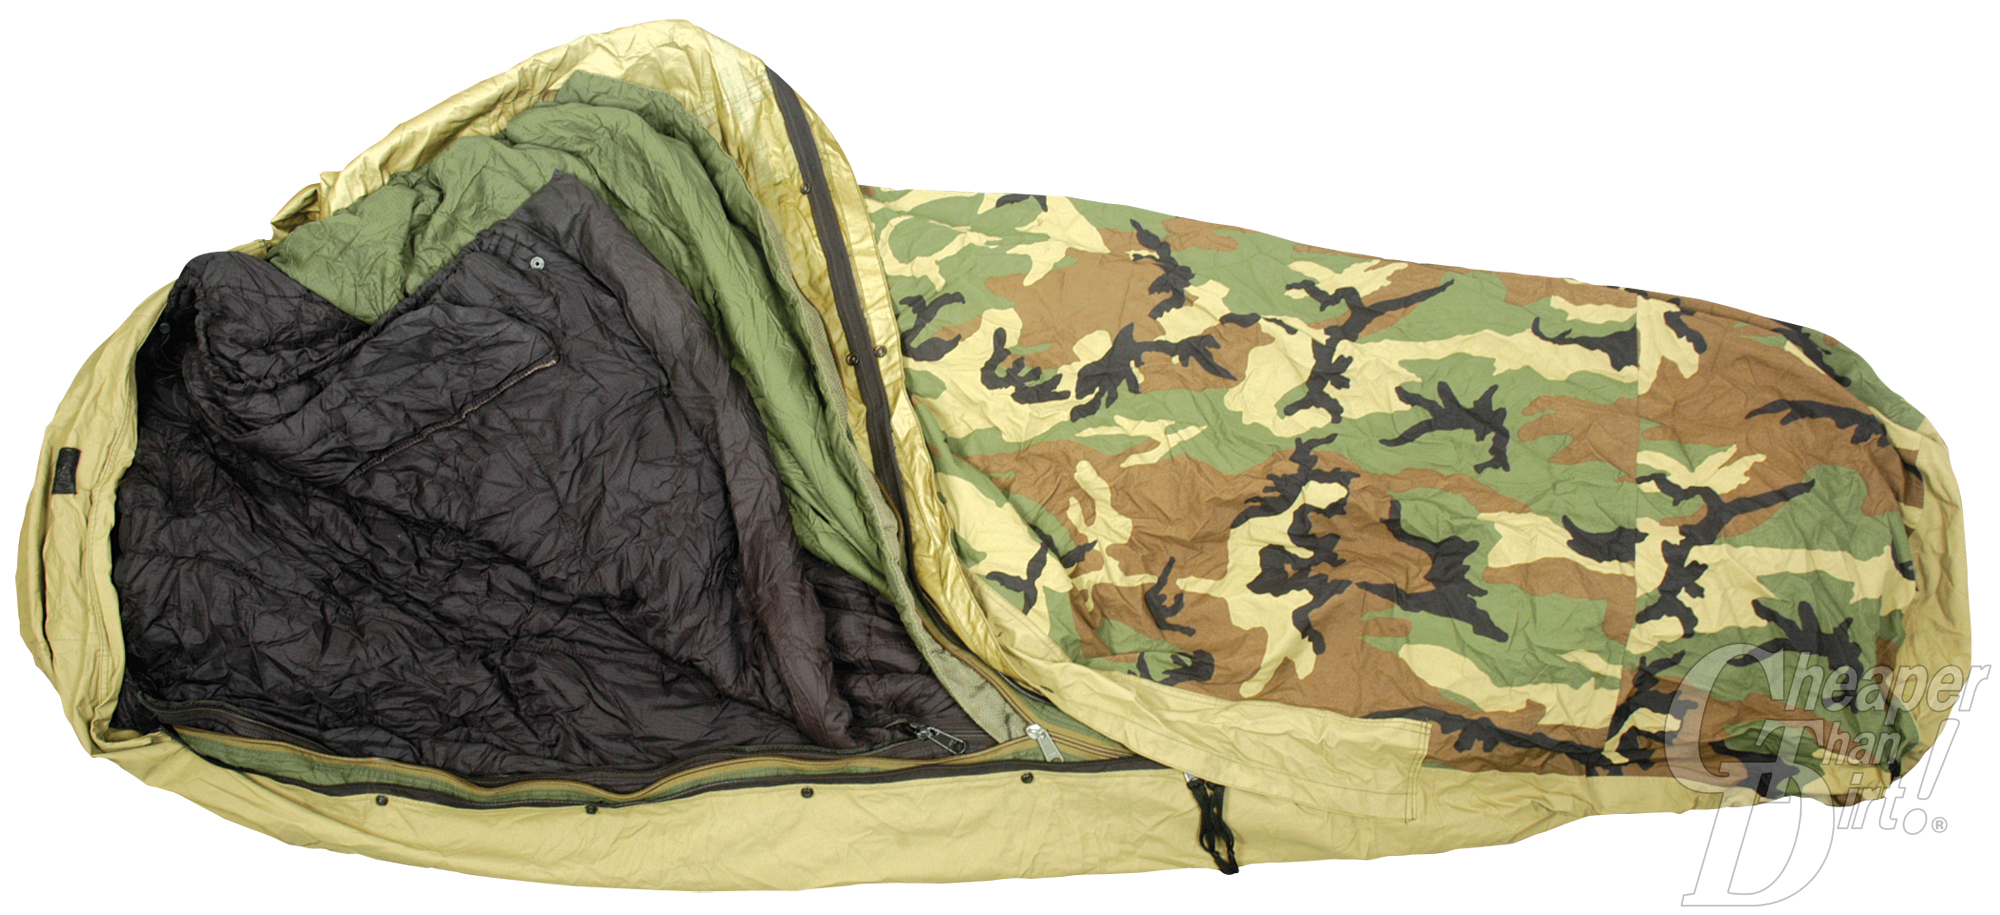 ECWS Modular Sleep System with Camo Cover